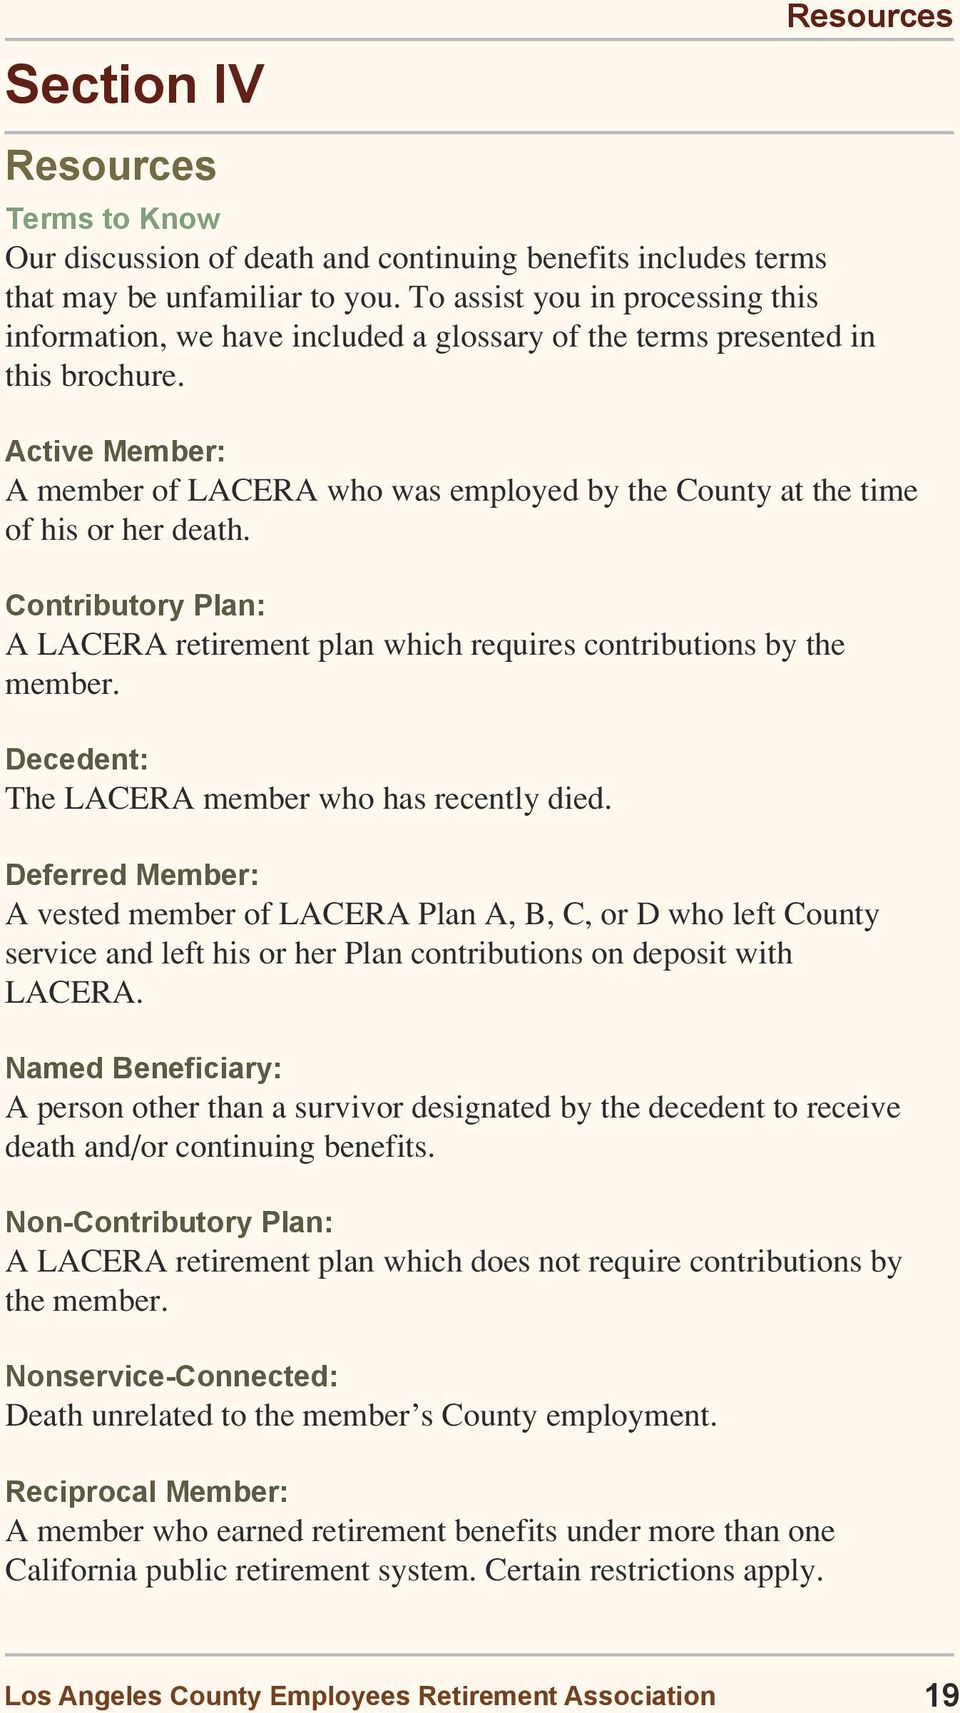 Active Member: A member of LACERA who was employed by the County at the time of his or her death. Contributory Plan: A LACERA retirement plan which requires contributions by the member.